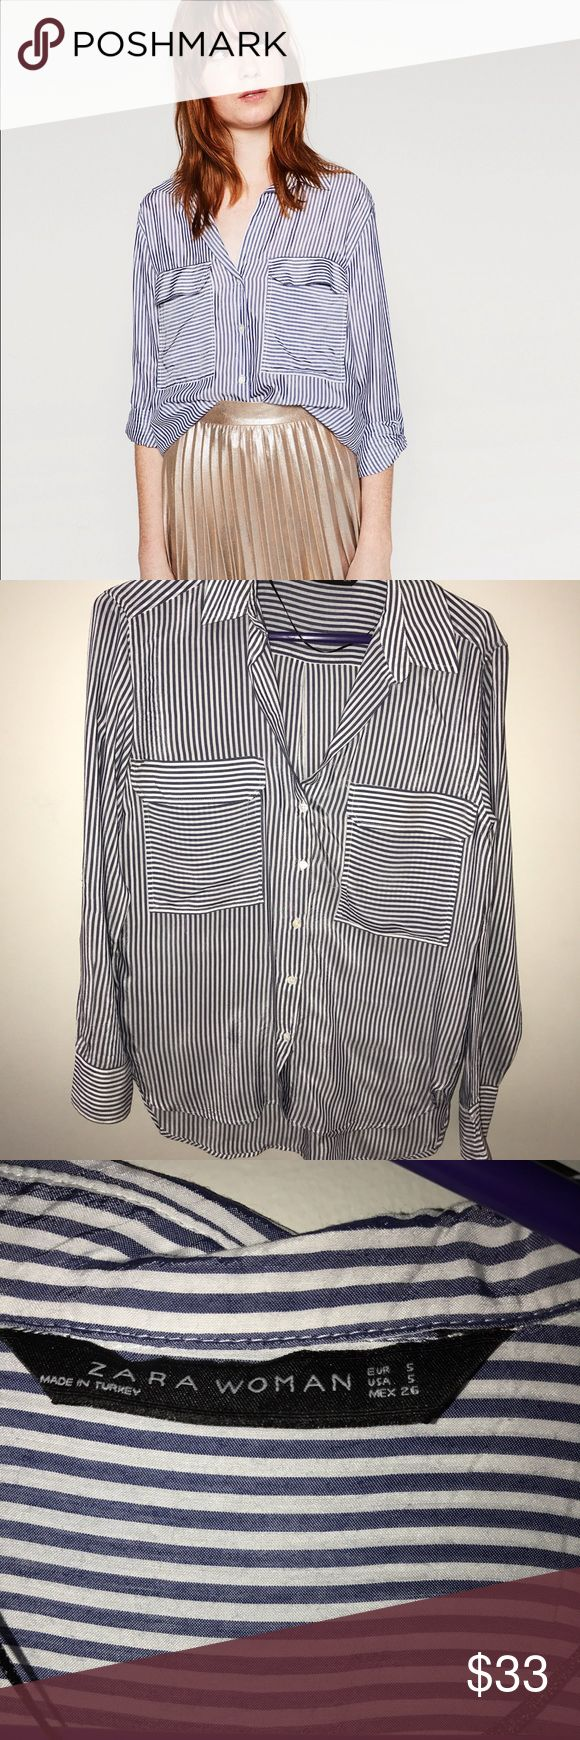 Zara Woman Striped Blue and White Blouse Perfect condition! This blouse from Zara, that I purchased in Paris, France is a size small, and retails for just $50. The shirt is great for all seasons! Fall/winter: paired with dark jeans and white sneakers, spring/summer: paired with white jeans and sandals. Zara Tops Blouses